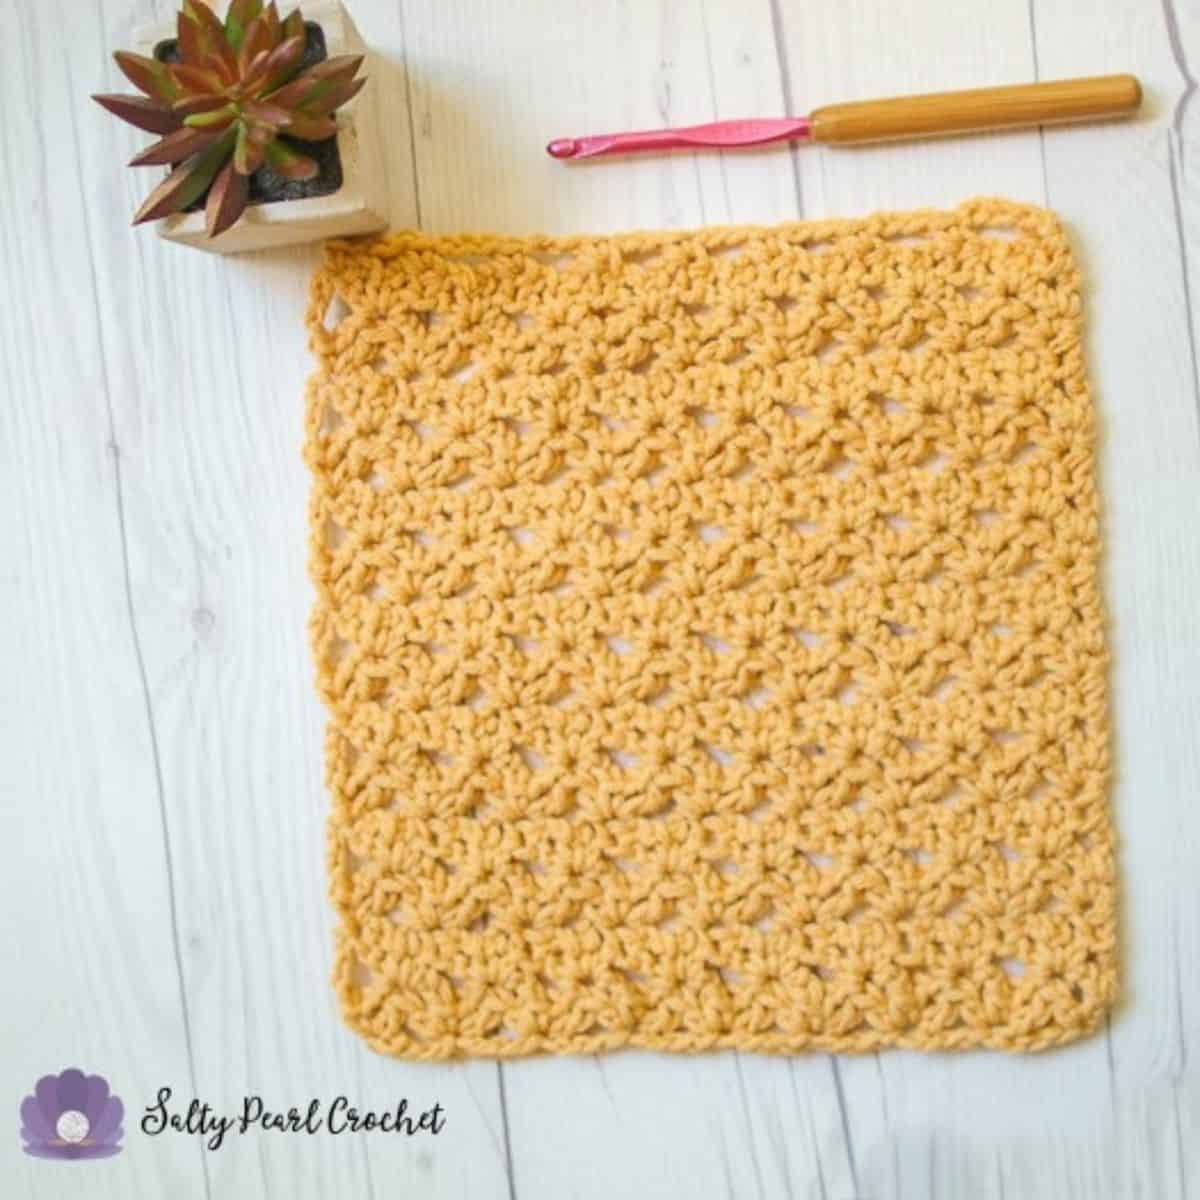 yellow crochet washcloth laying flat next to a plant and a crochet hook